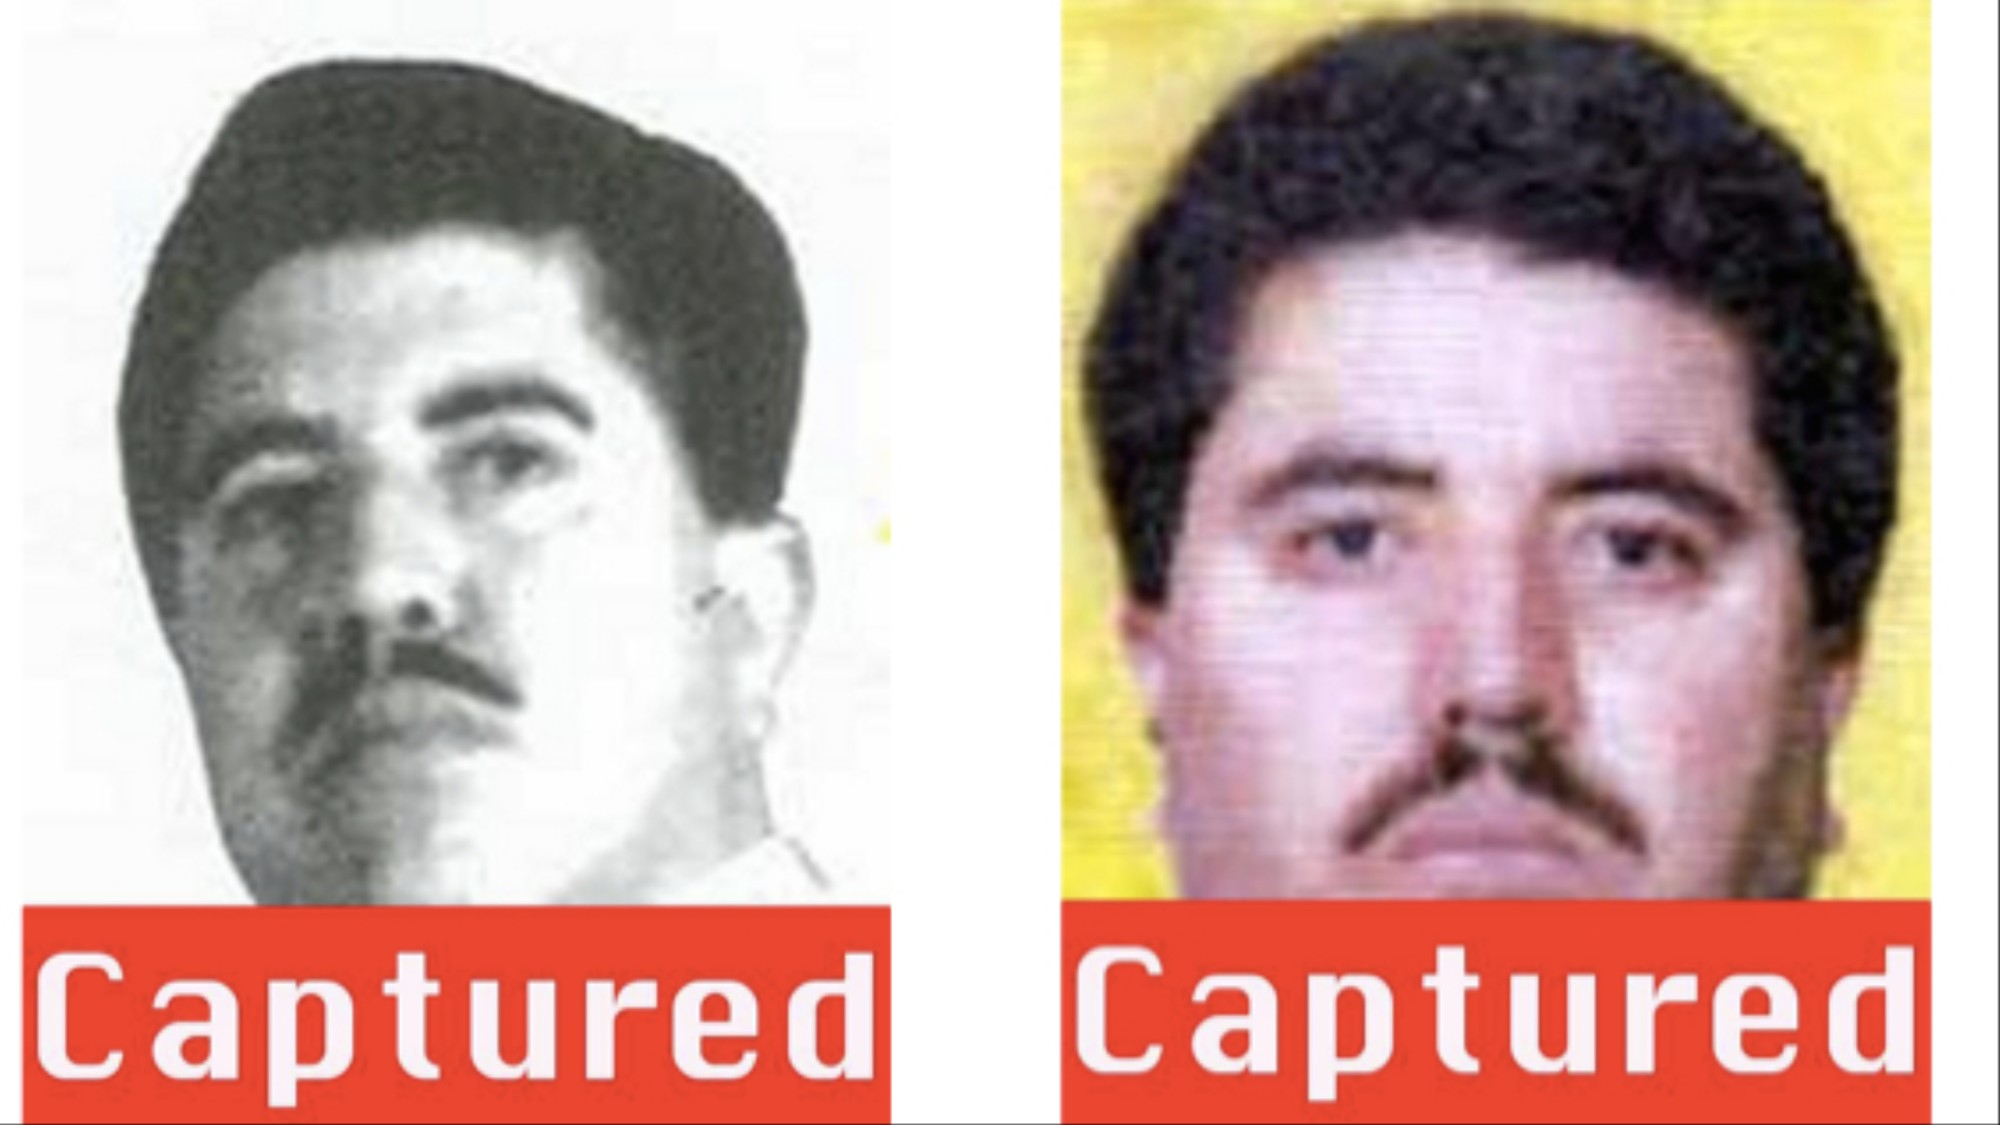 The Rise and Fall of Cartel Leader Vicente Carrillo Fuentes